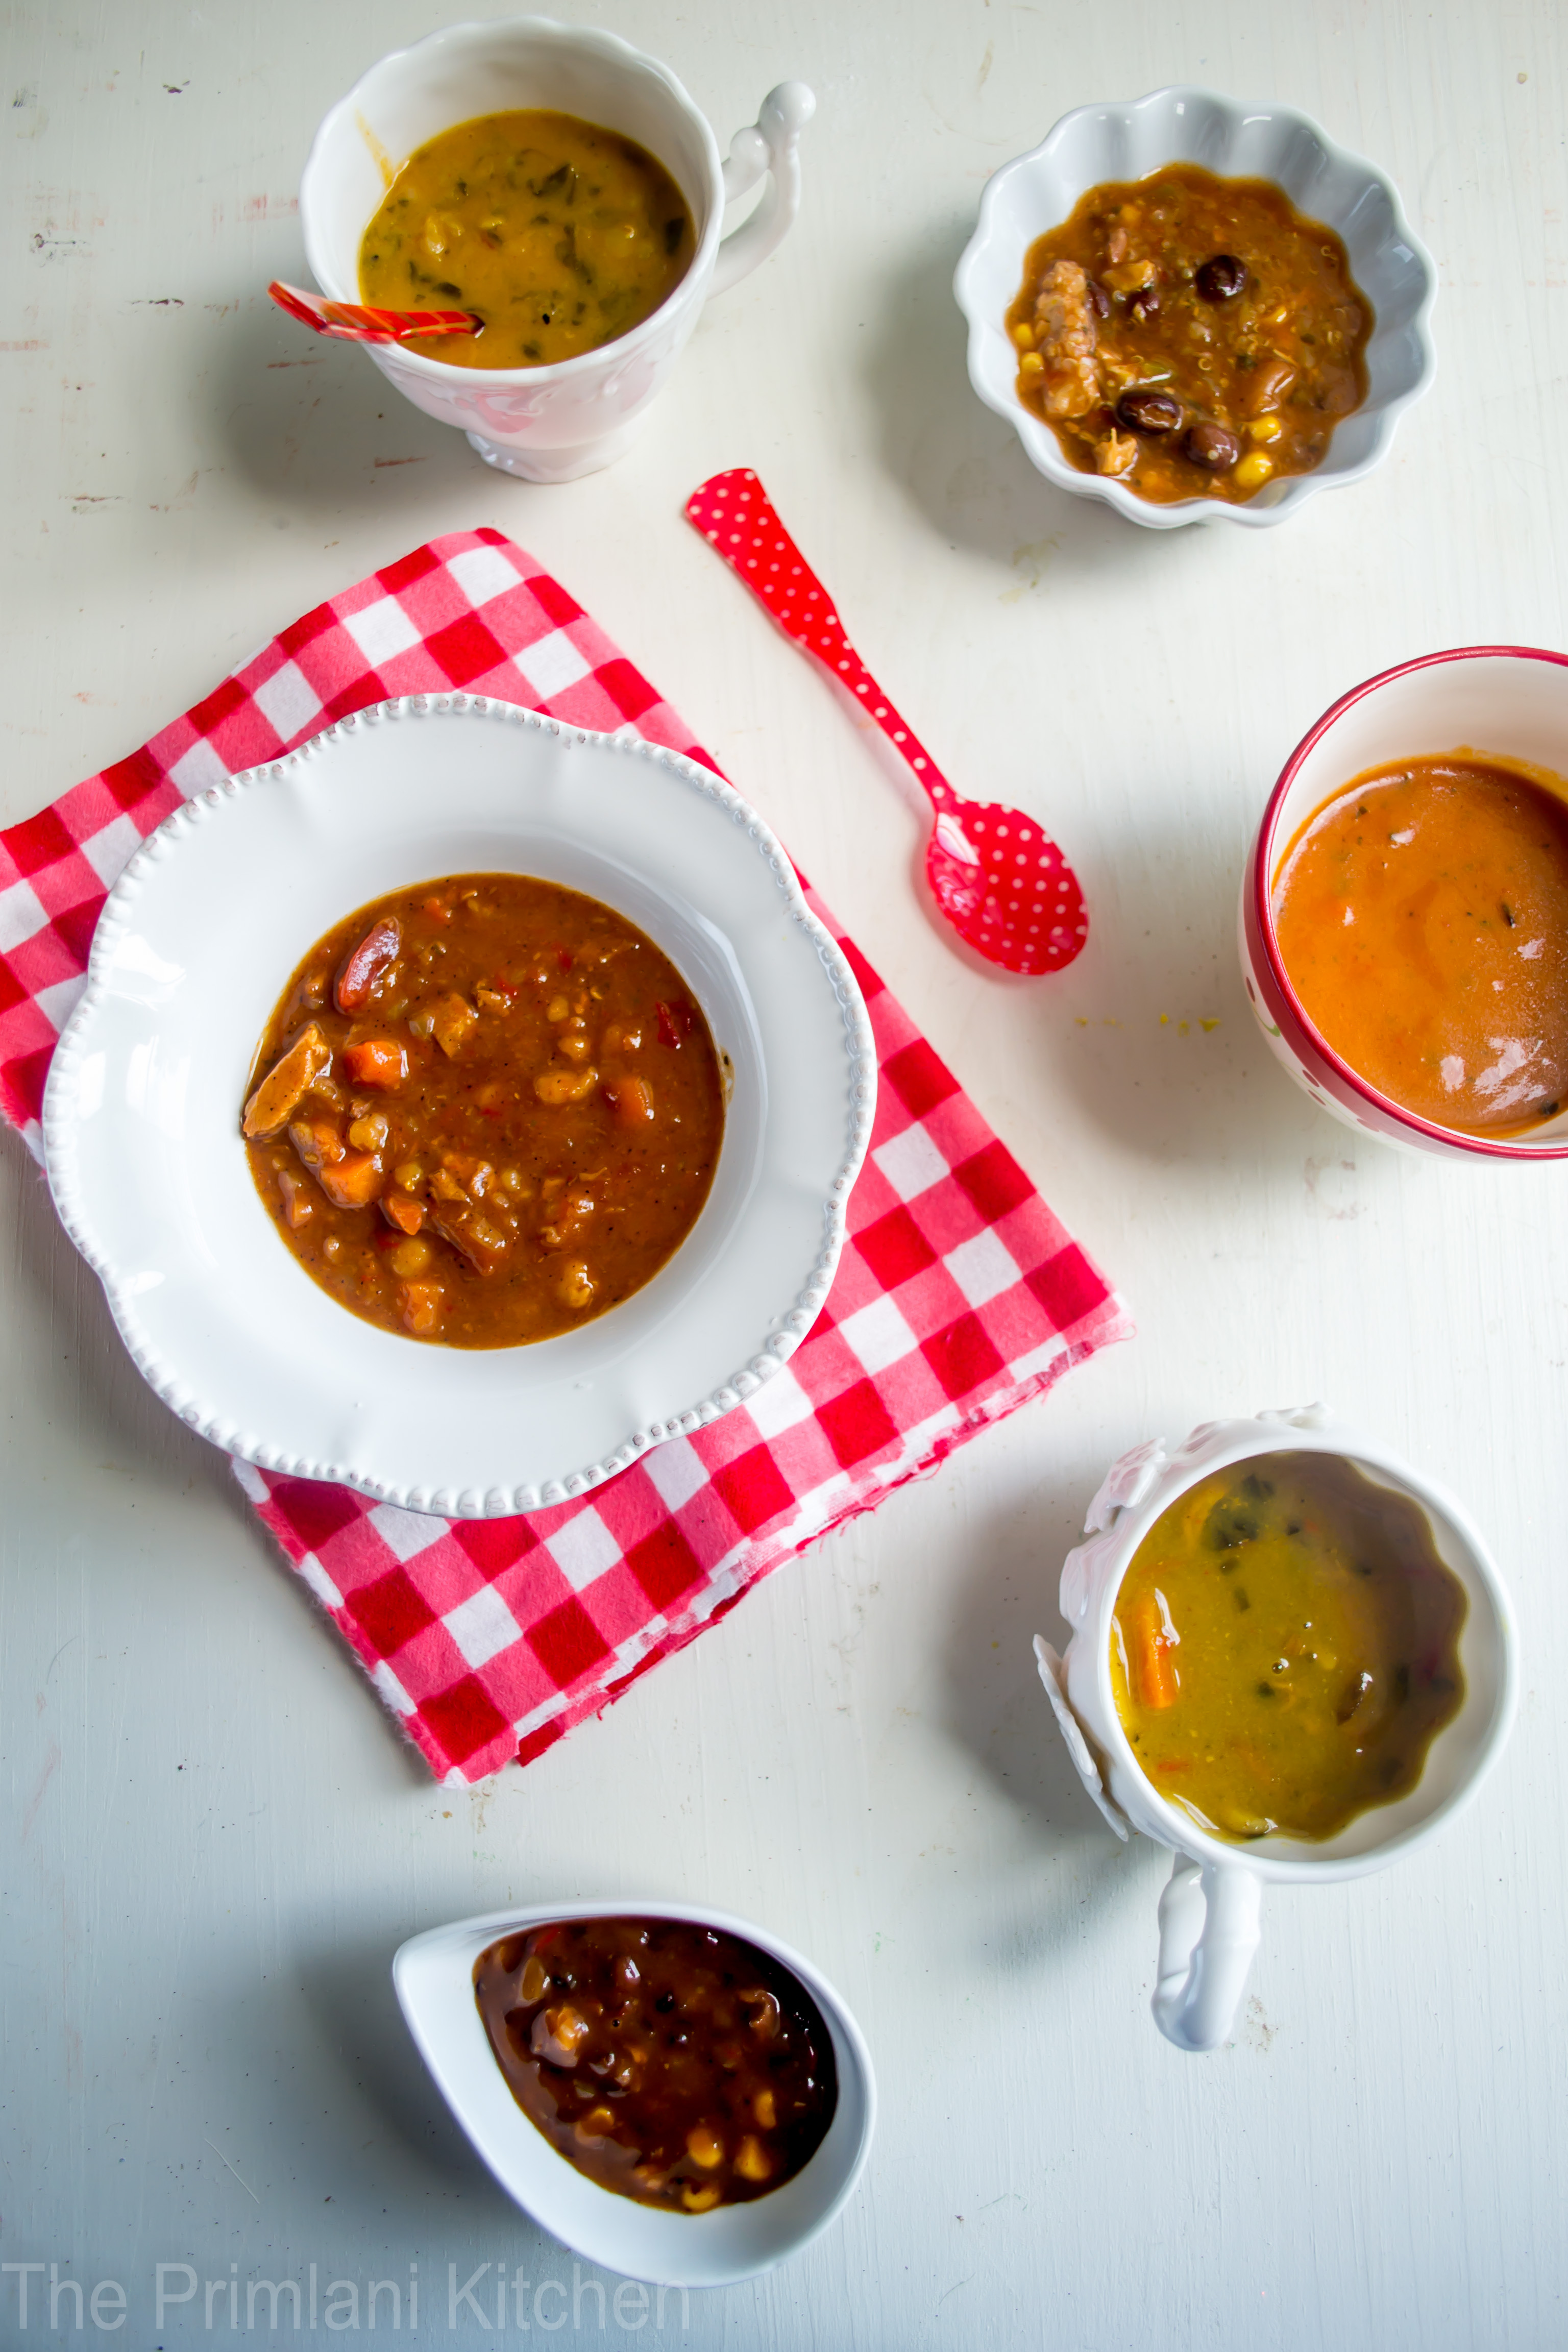 Campbell s Go Soup Have You Tried it Yet – The Primlani Kitchen